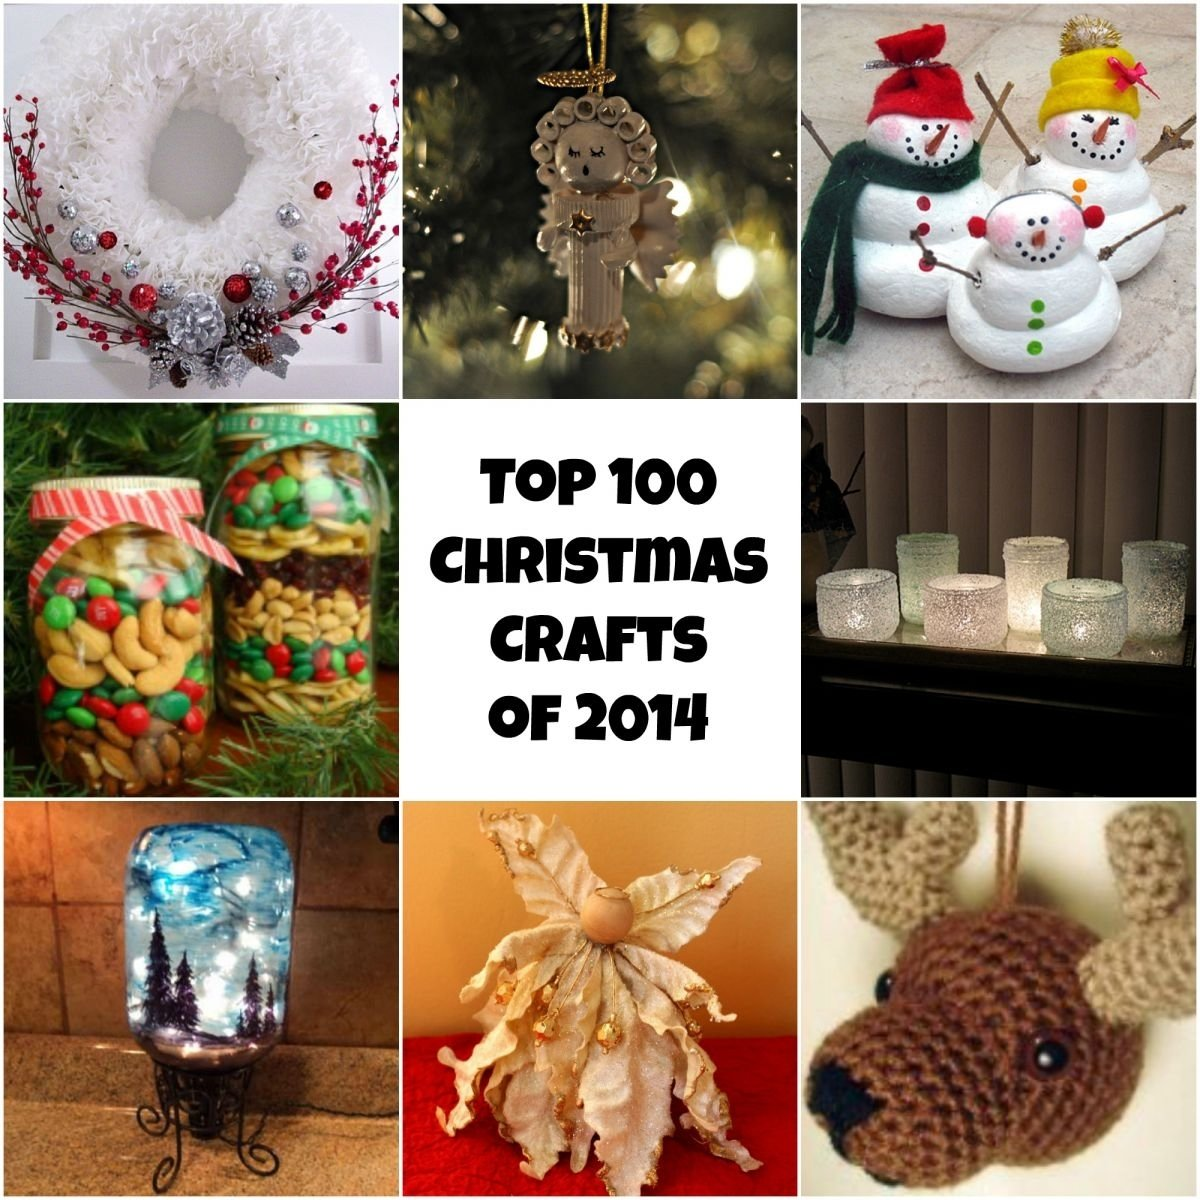 10 Best Home Made Christmas Gift Ideas top 100 diy christmas crafts of 2014 homemade christmas ornaments 2020